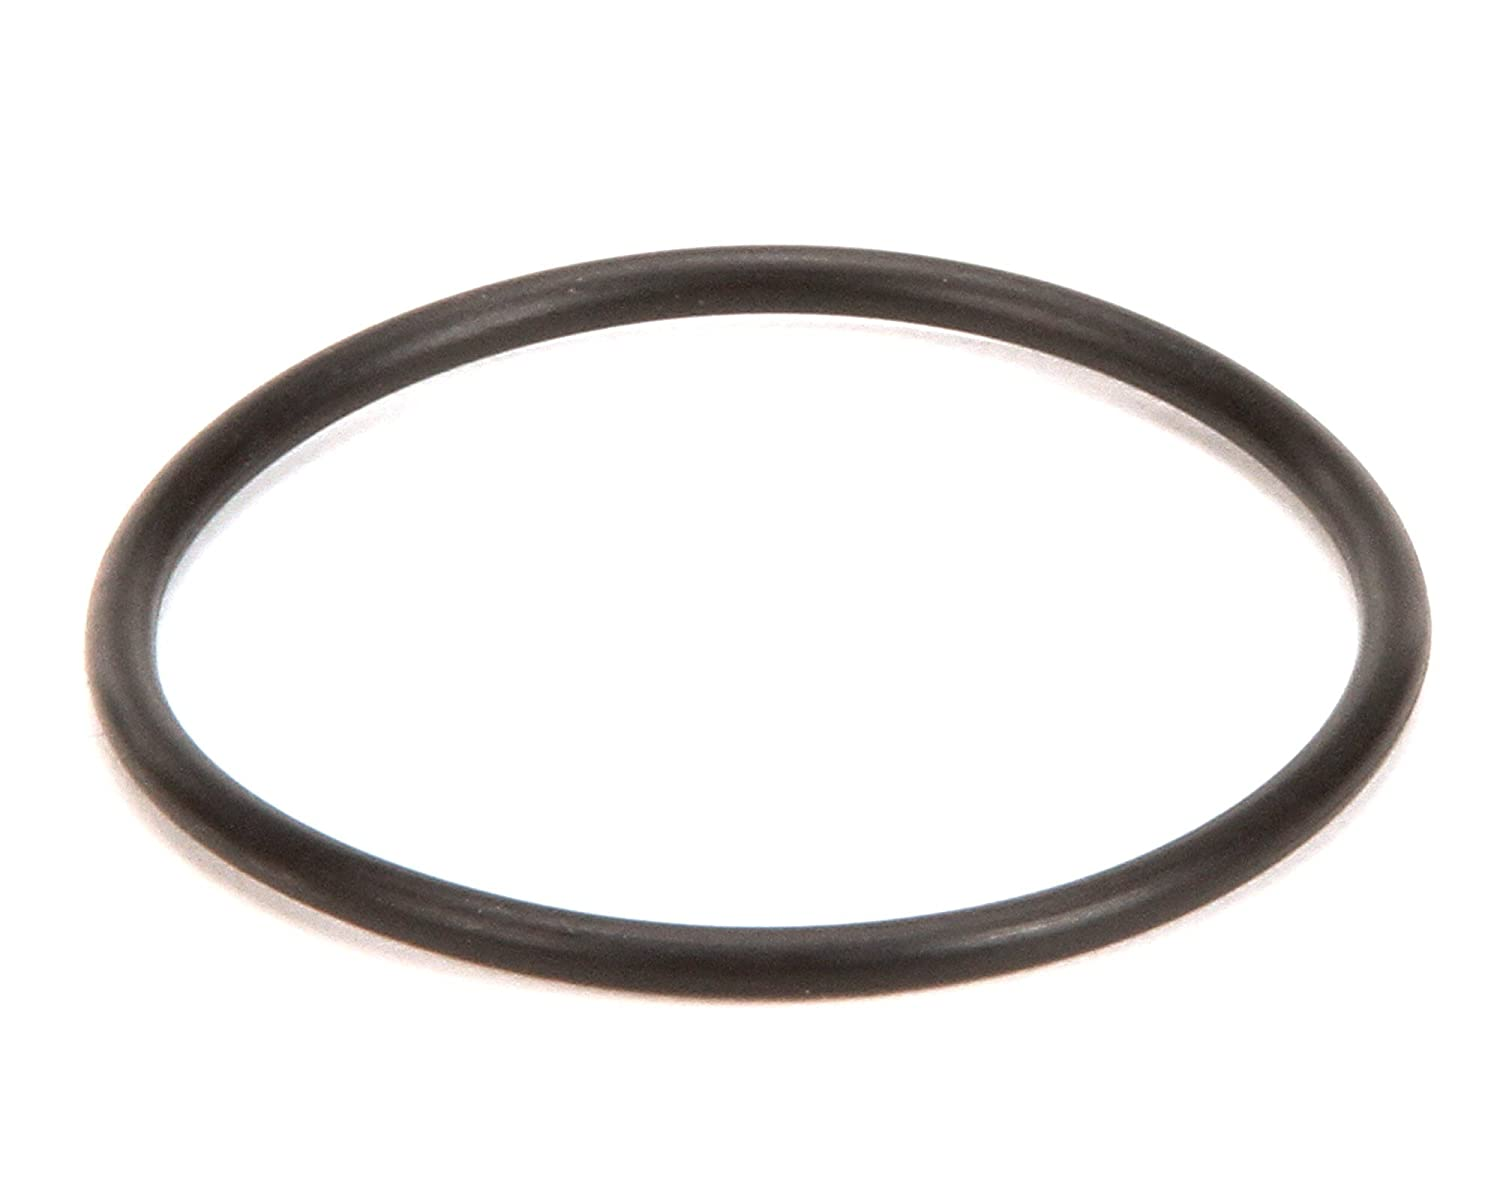 Cleveland SE3ORING00004 O-RINGTRADE SIZE SE3ORING Ranking TOP3 Max 71% OFF OUTRRTD 2-131